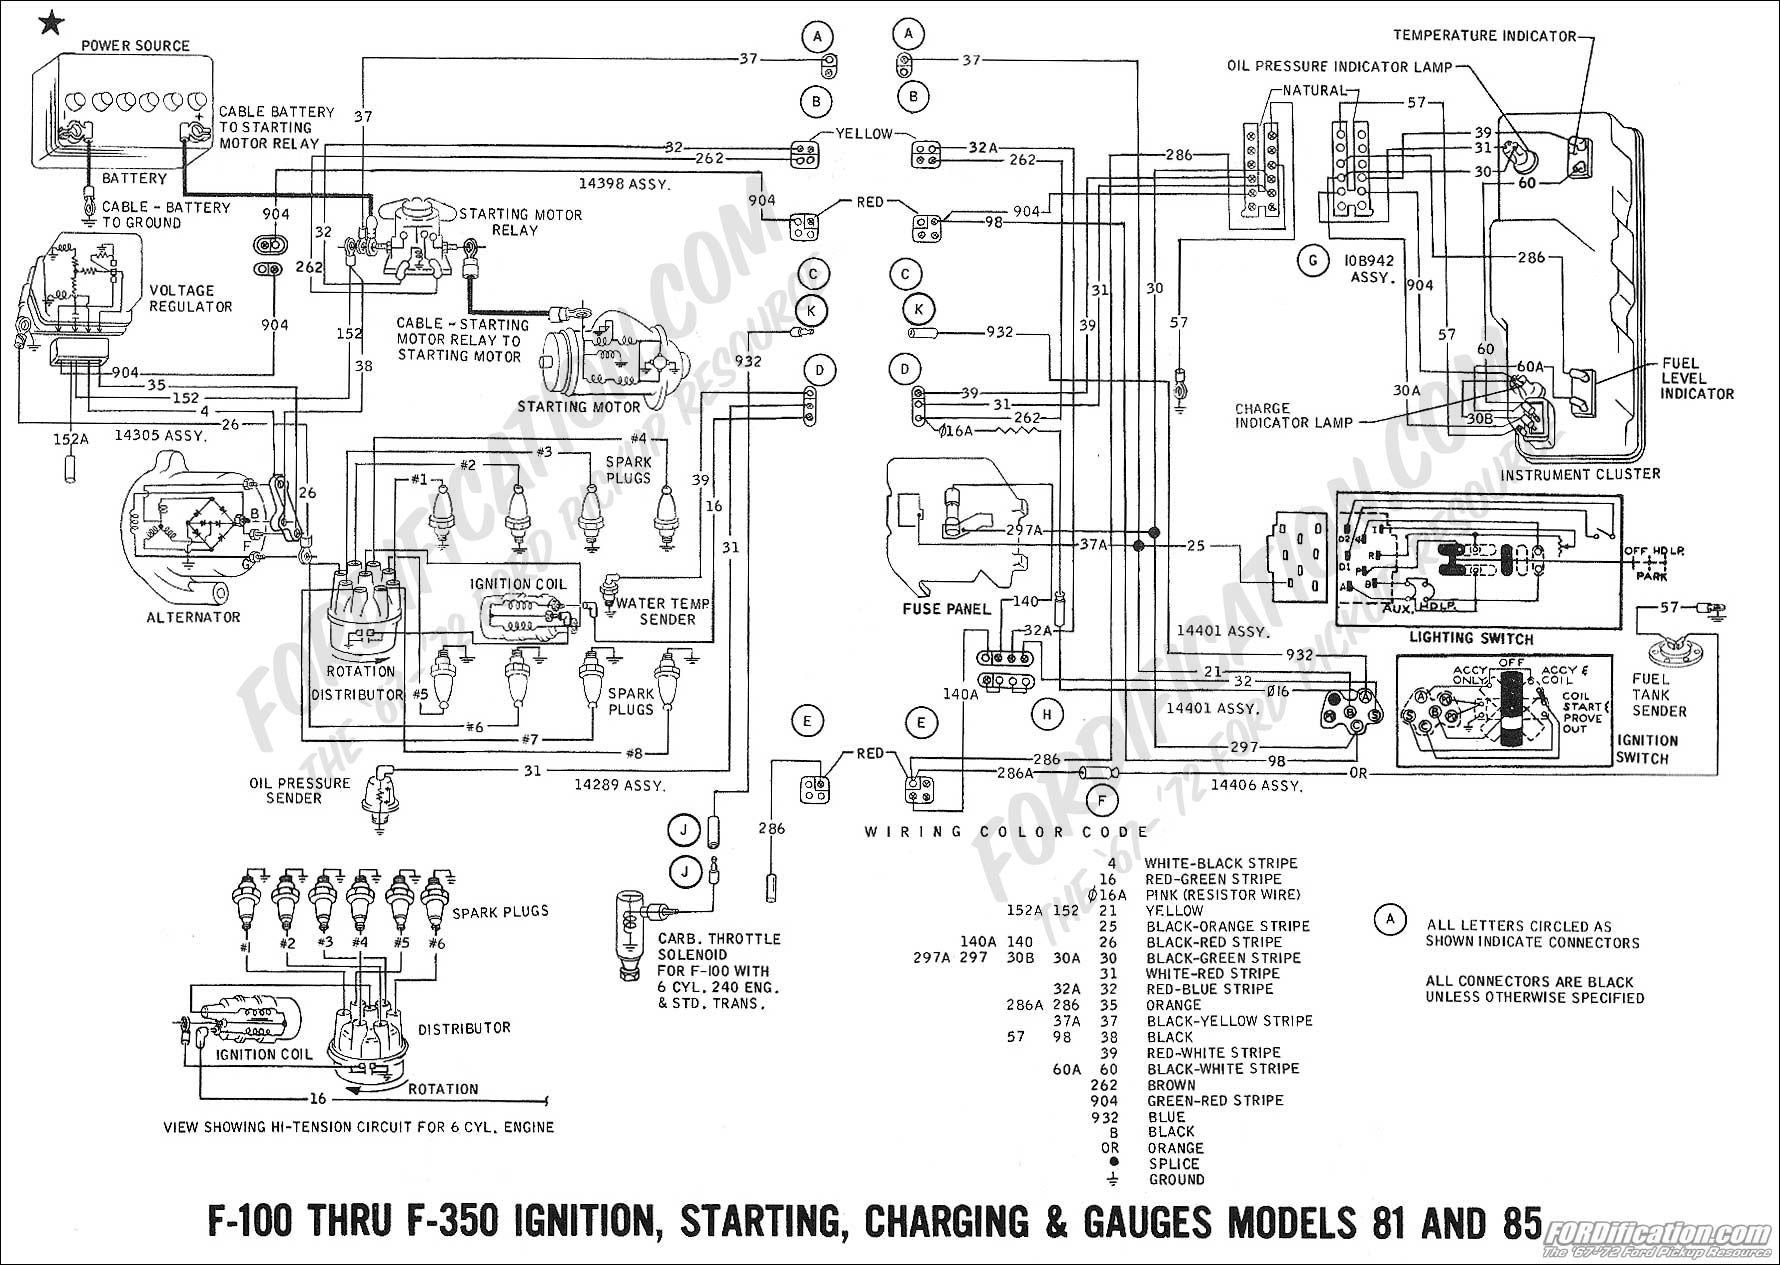 1995 Ford Mustang Fuse Box Wiring Library 2002 1968 Diagram Schematic Enthusiast Rh Rasalibre Co